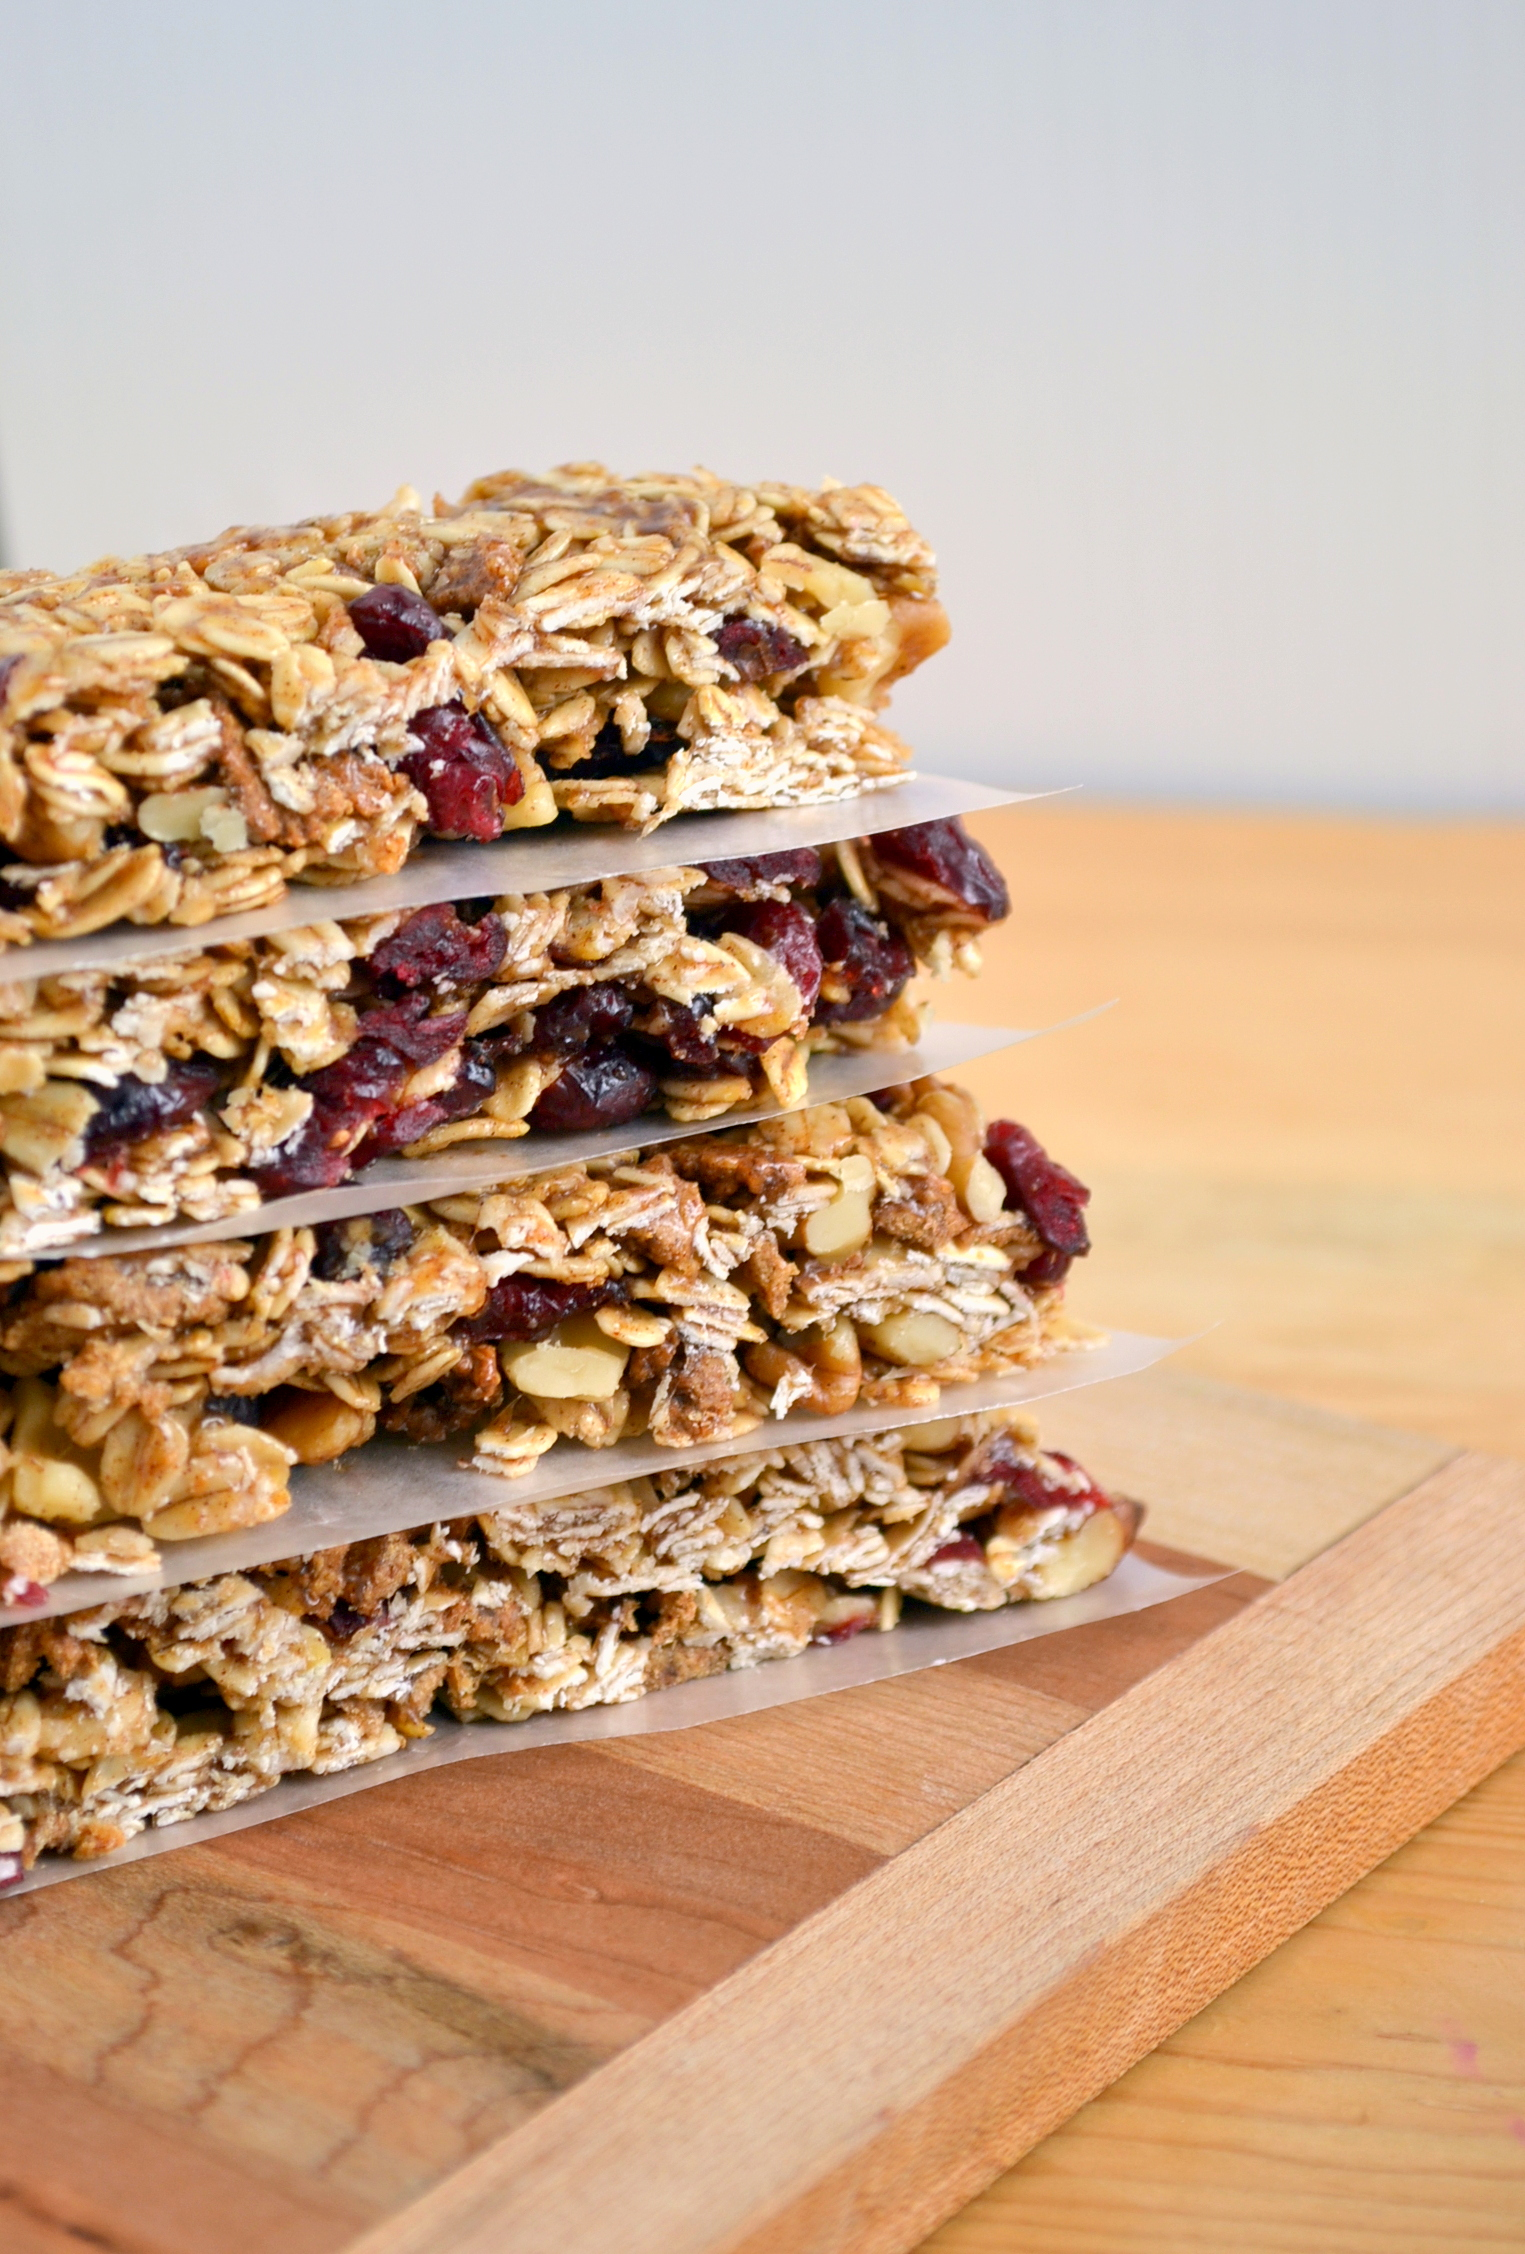 Chewy Nut And Cereal Bars Recipes — Dishmaps